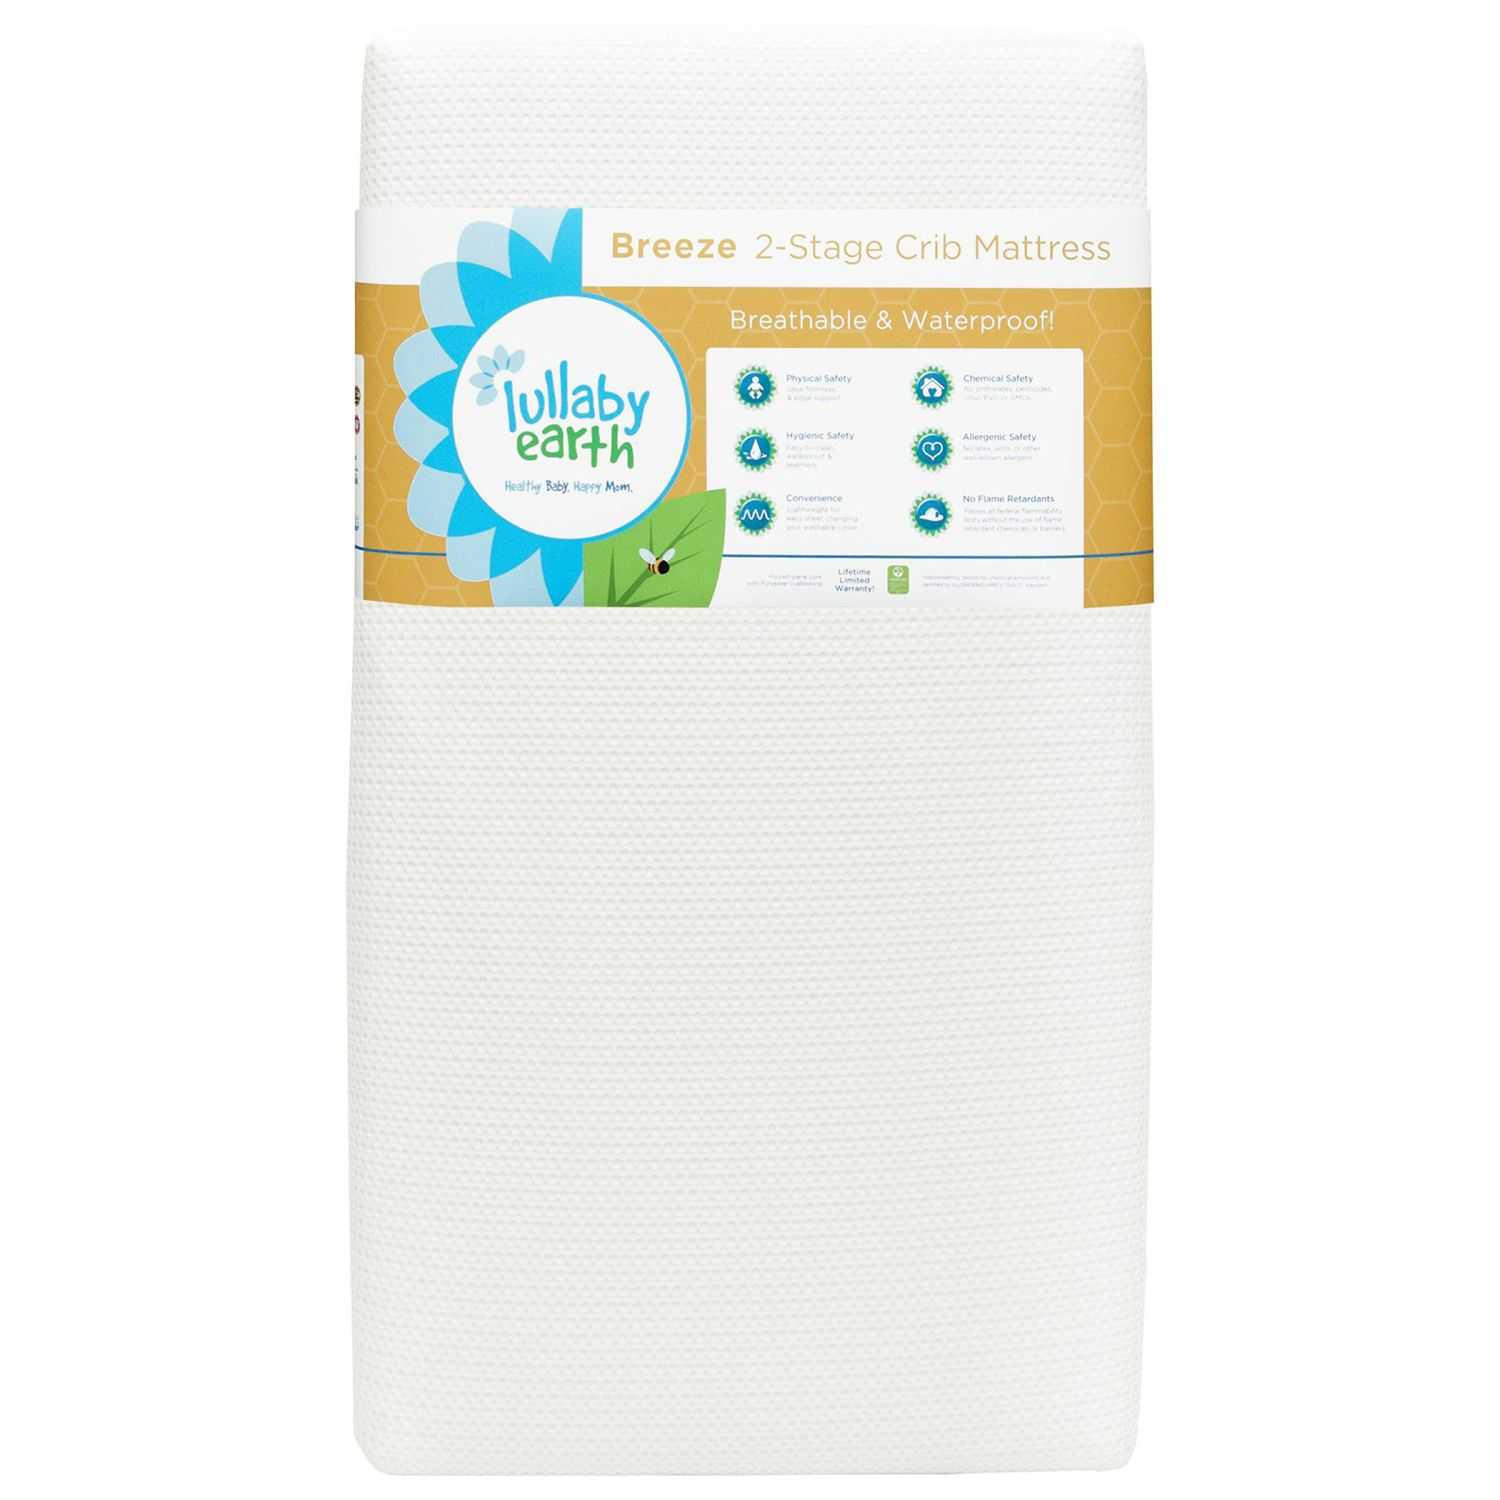 lullaby earth breeze breathable waterproof 2stage crib mattress